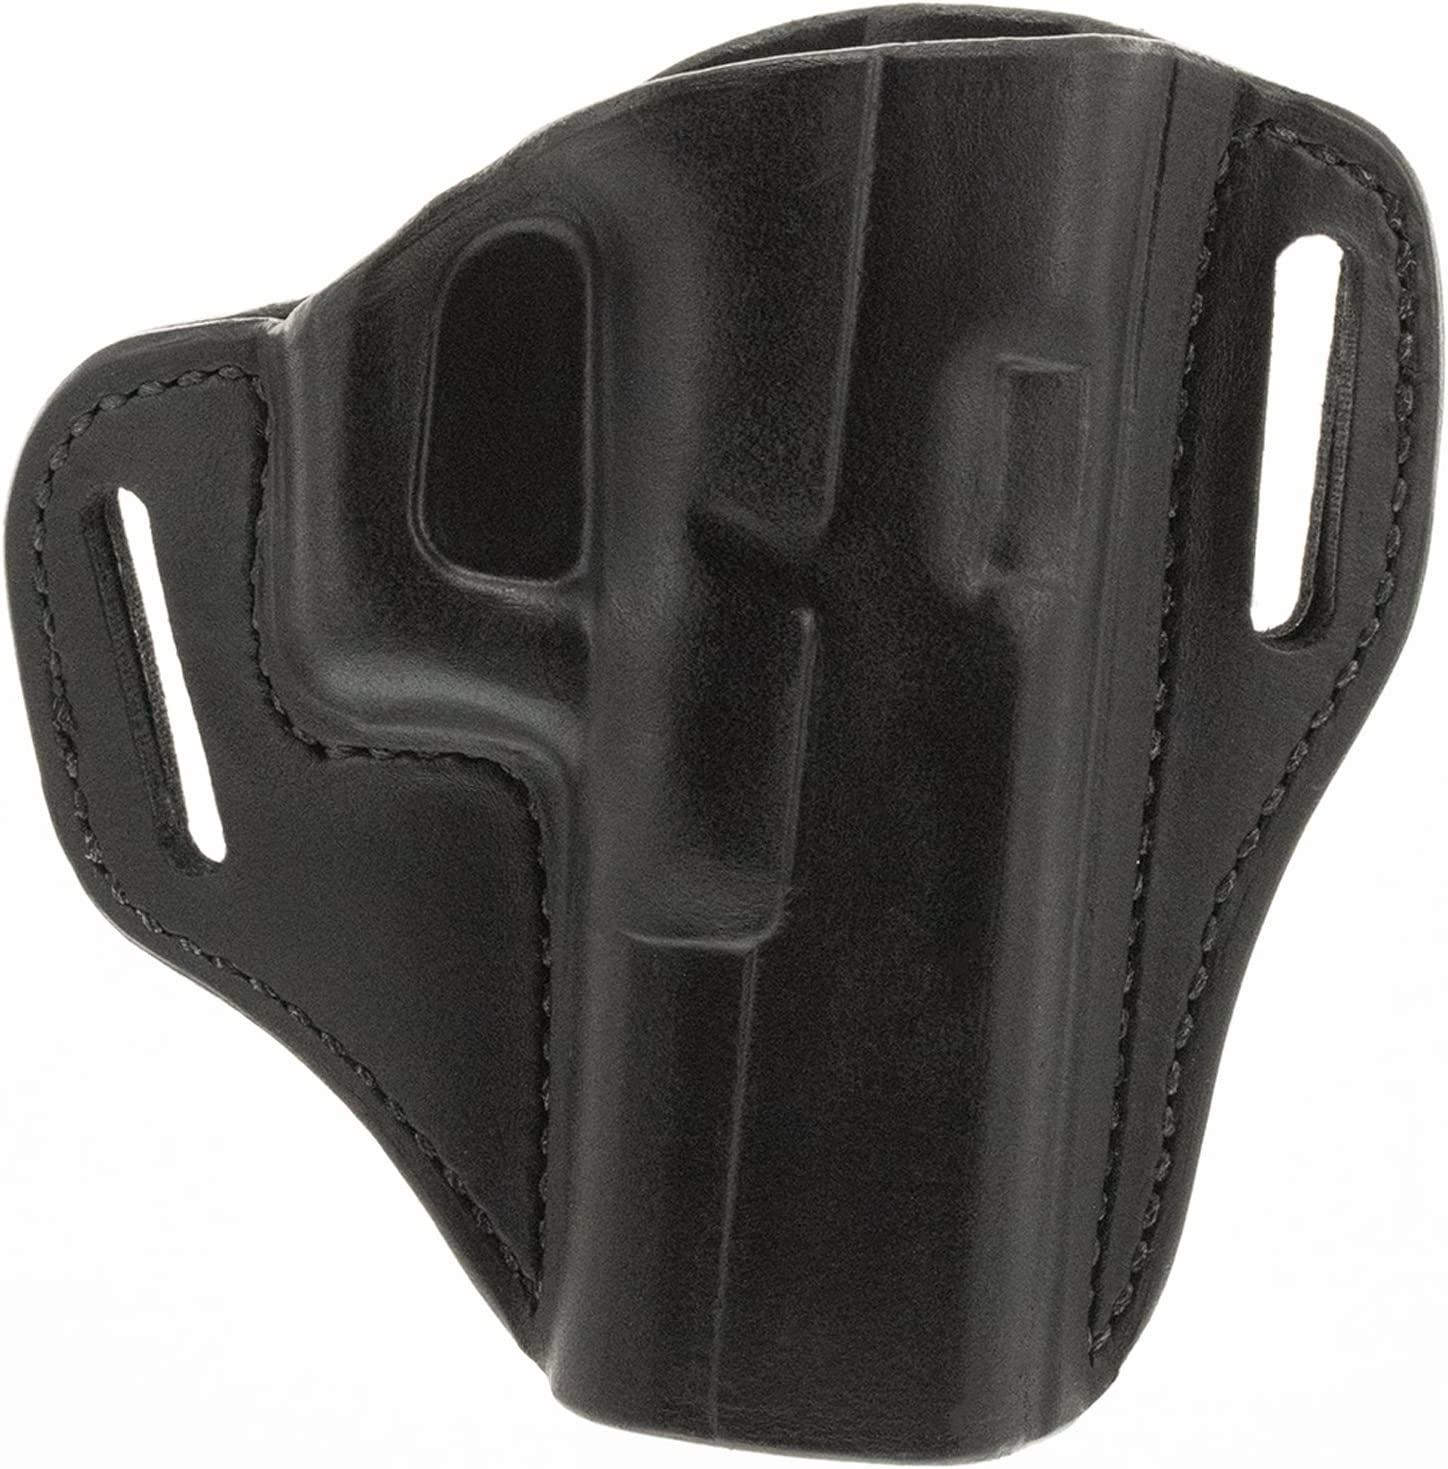 Bianchi #57 Remedy OWB Holster